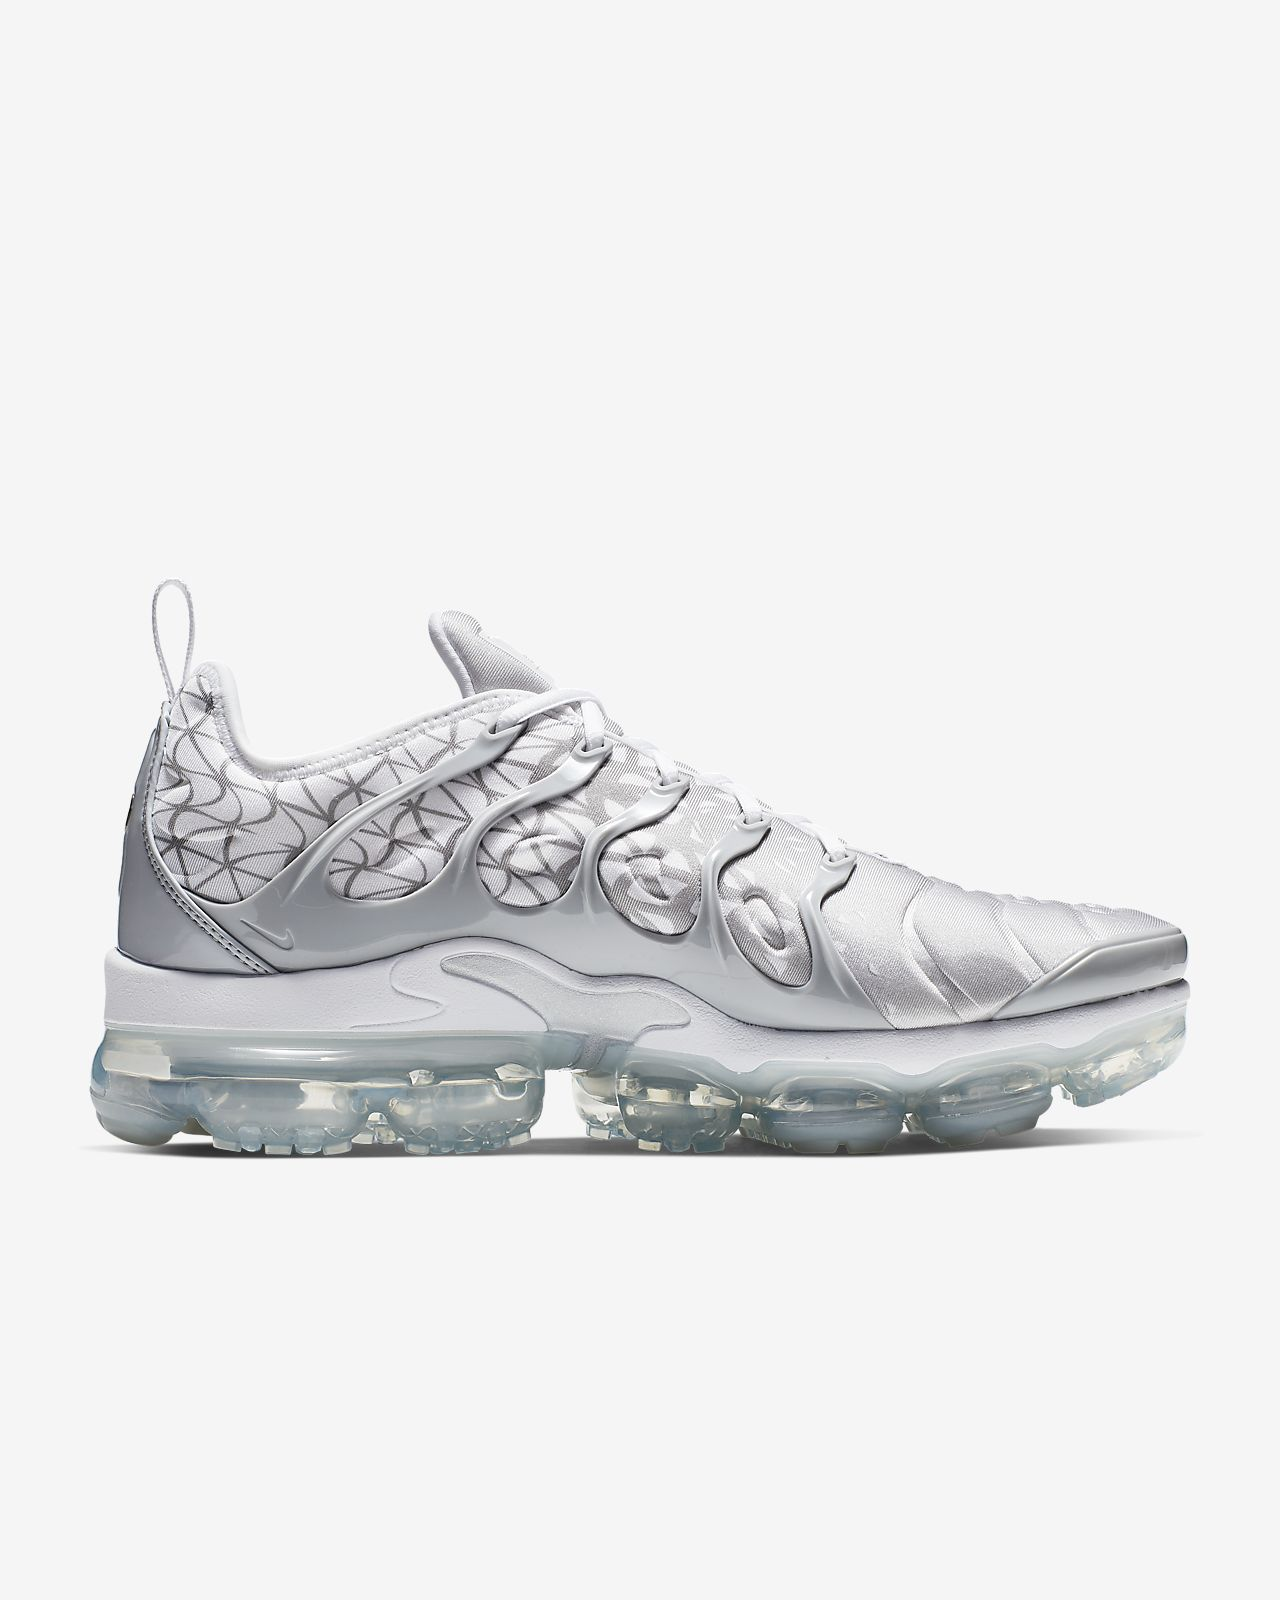 sneakers for cheap 37e2f 1a3a0 ... Chaussure Nike Air VaporMax Plus pour Homme